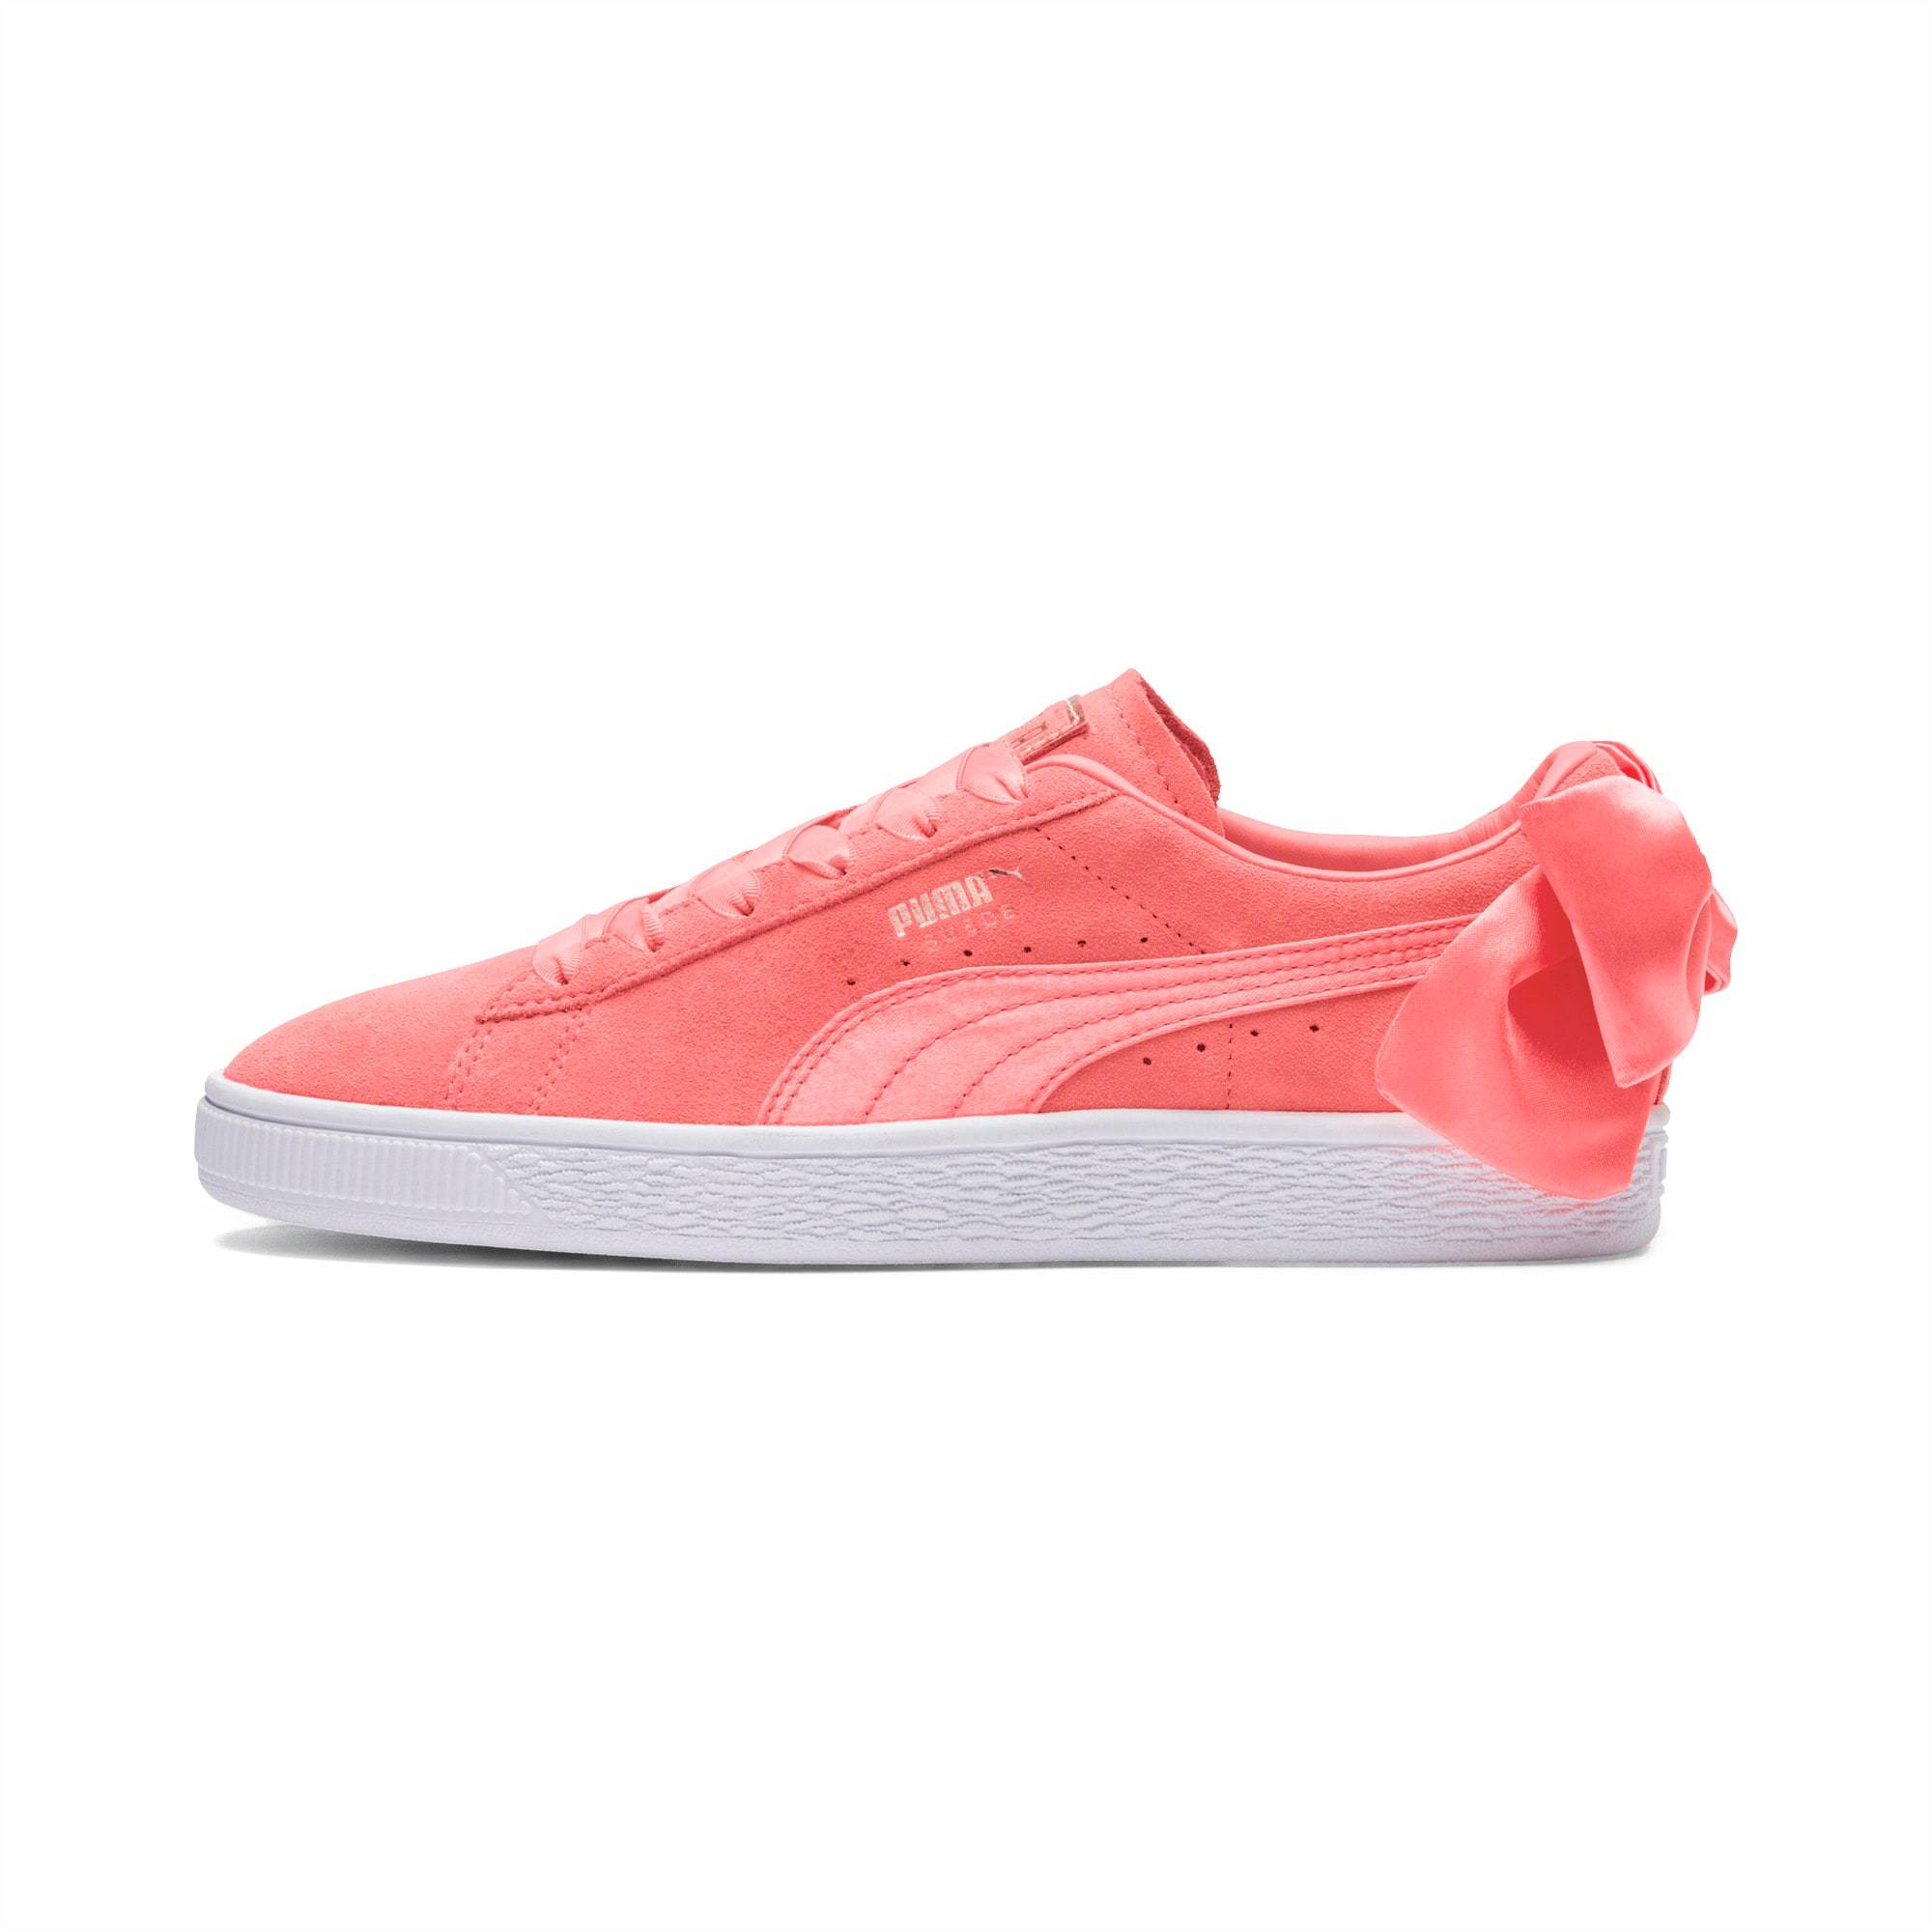 PUMA Chaussure Suede Bow pour Femme, Rose, Taille 40.5, Chaussures